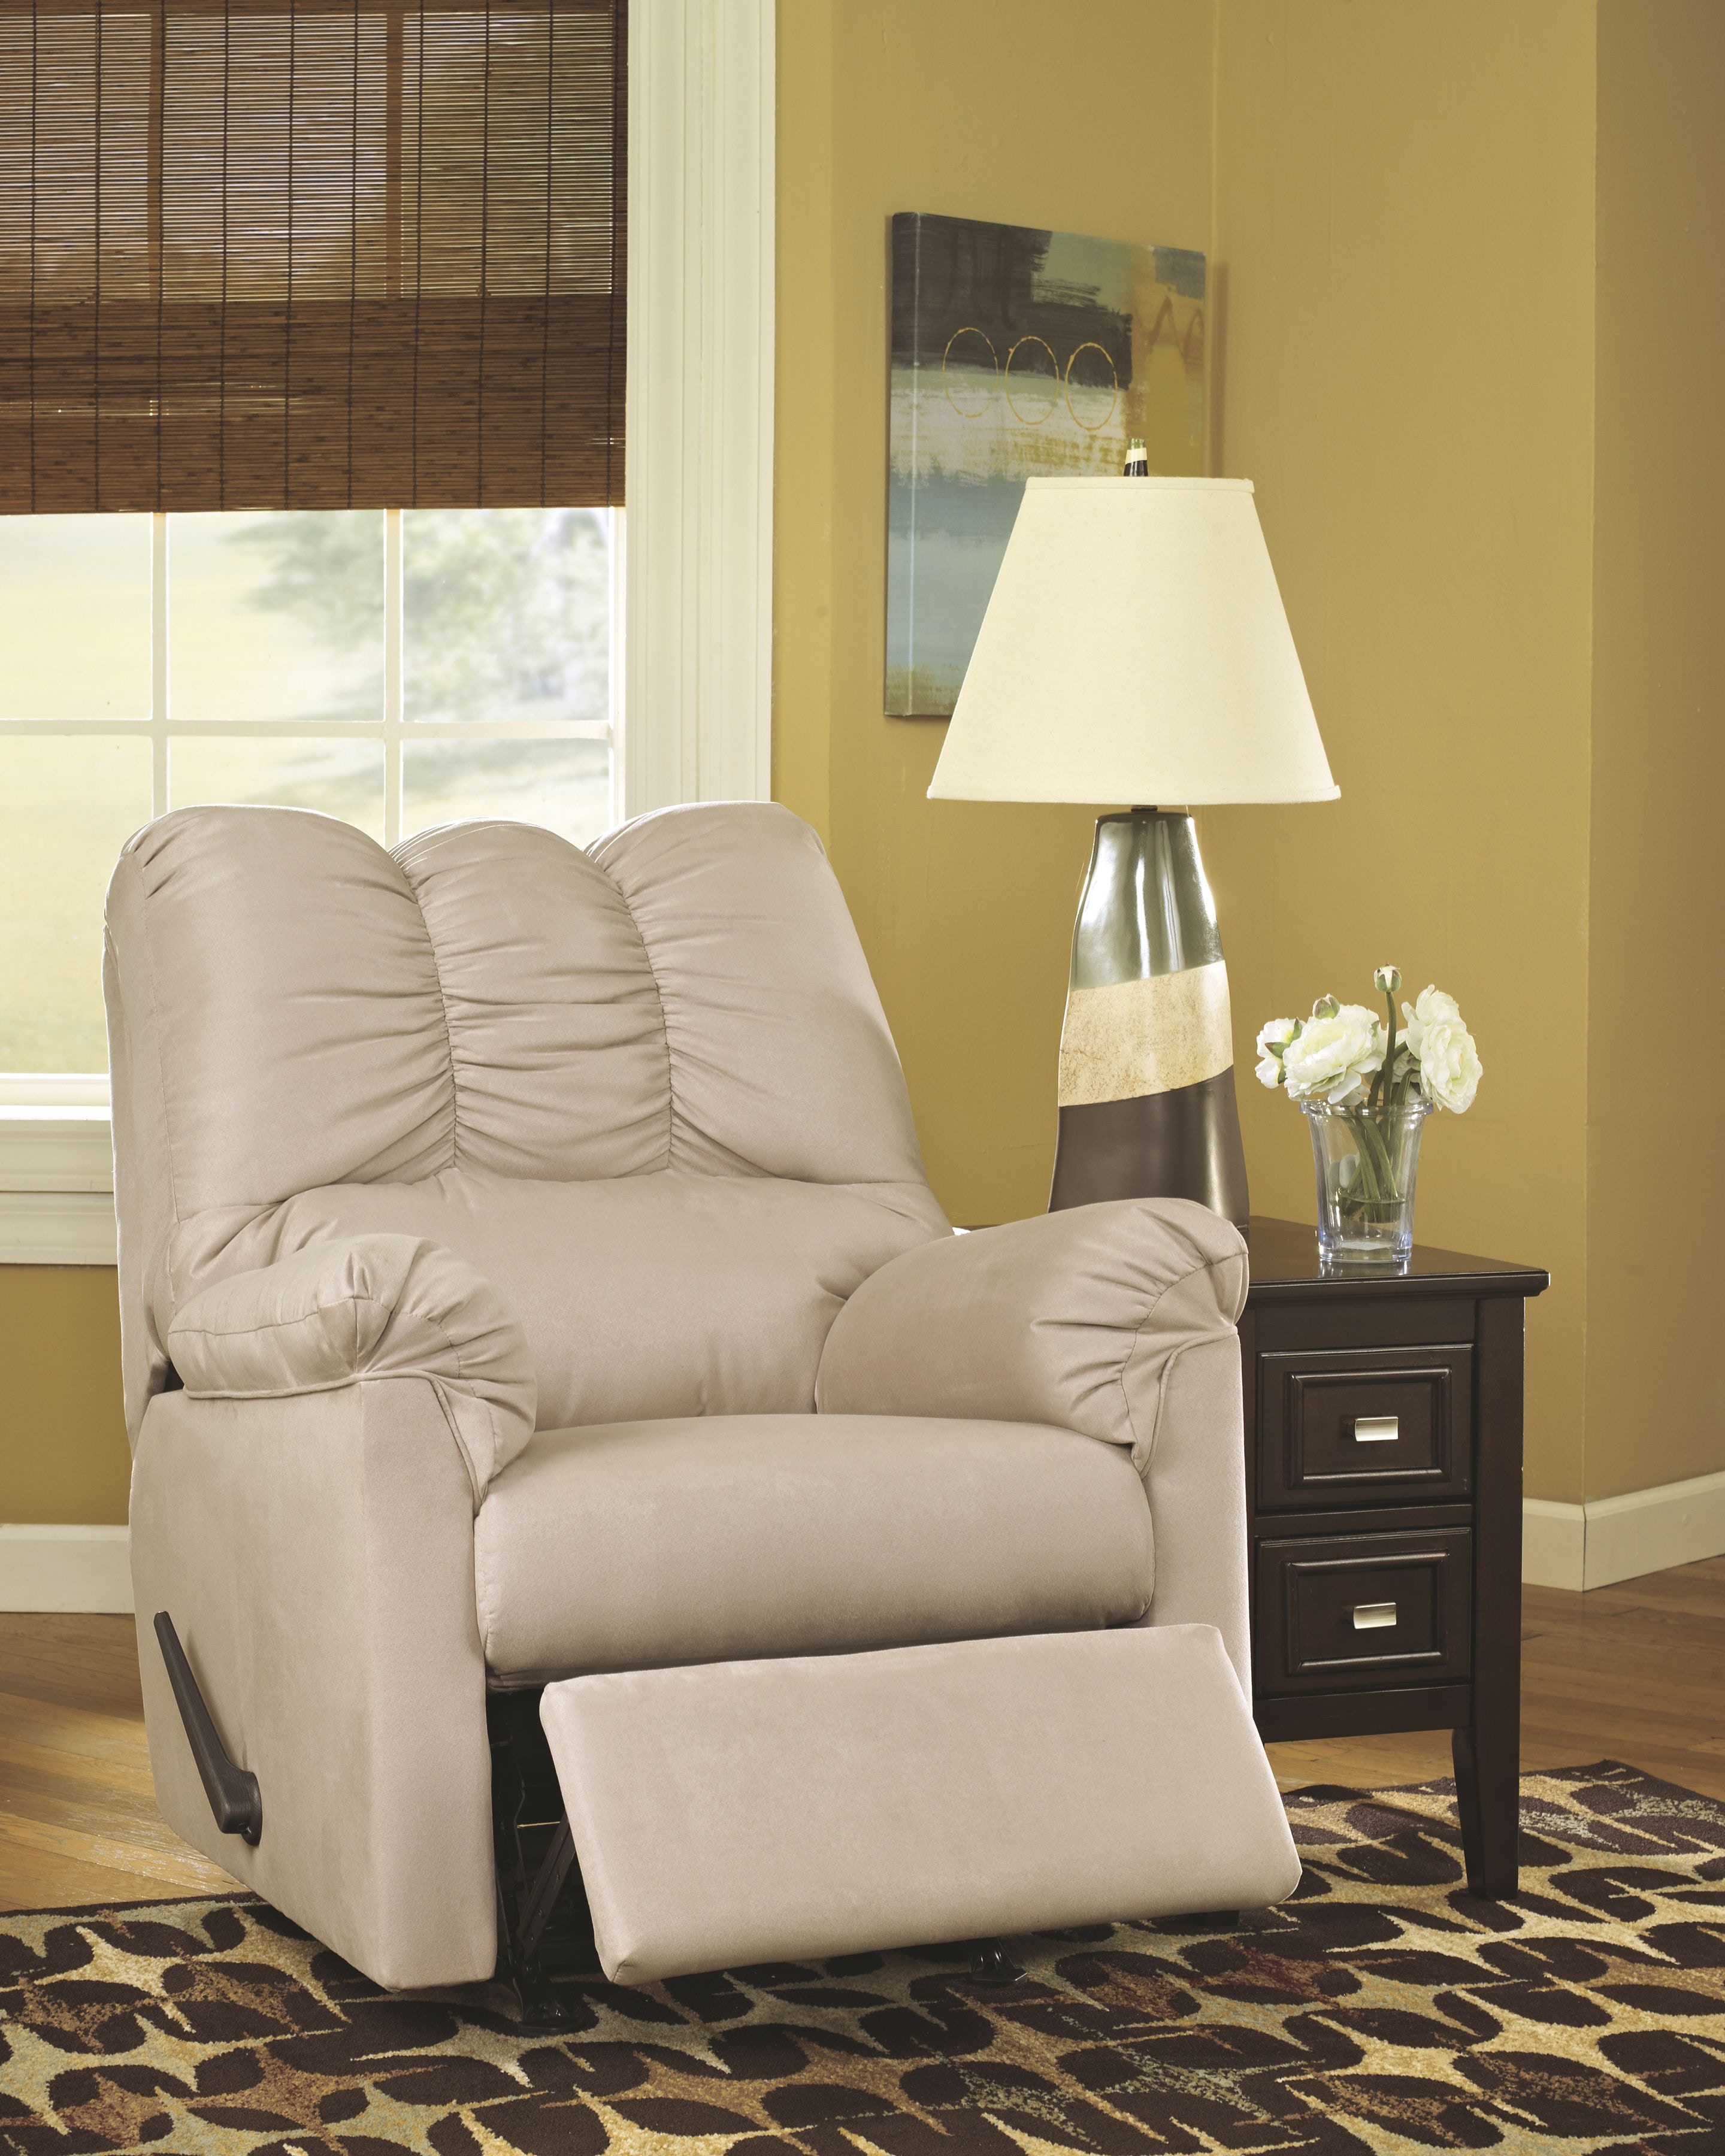 jive chenille living room furniture collection modern for small spaces chairs love s bedding and claremont nh 7500025